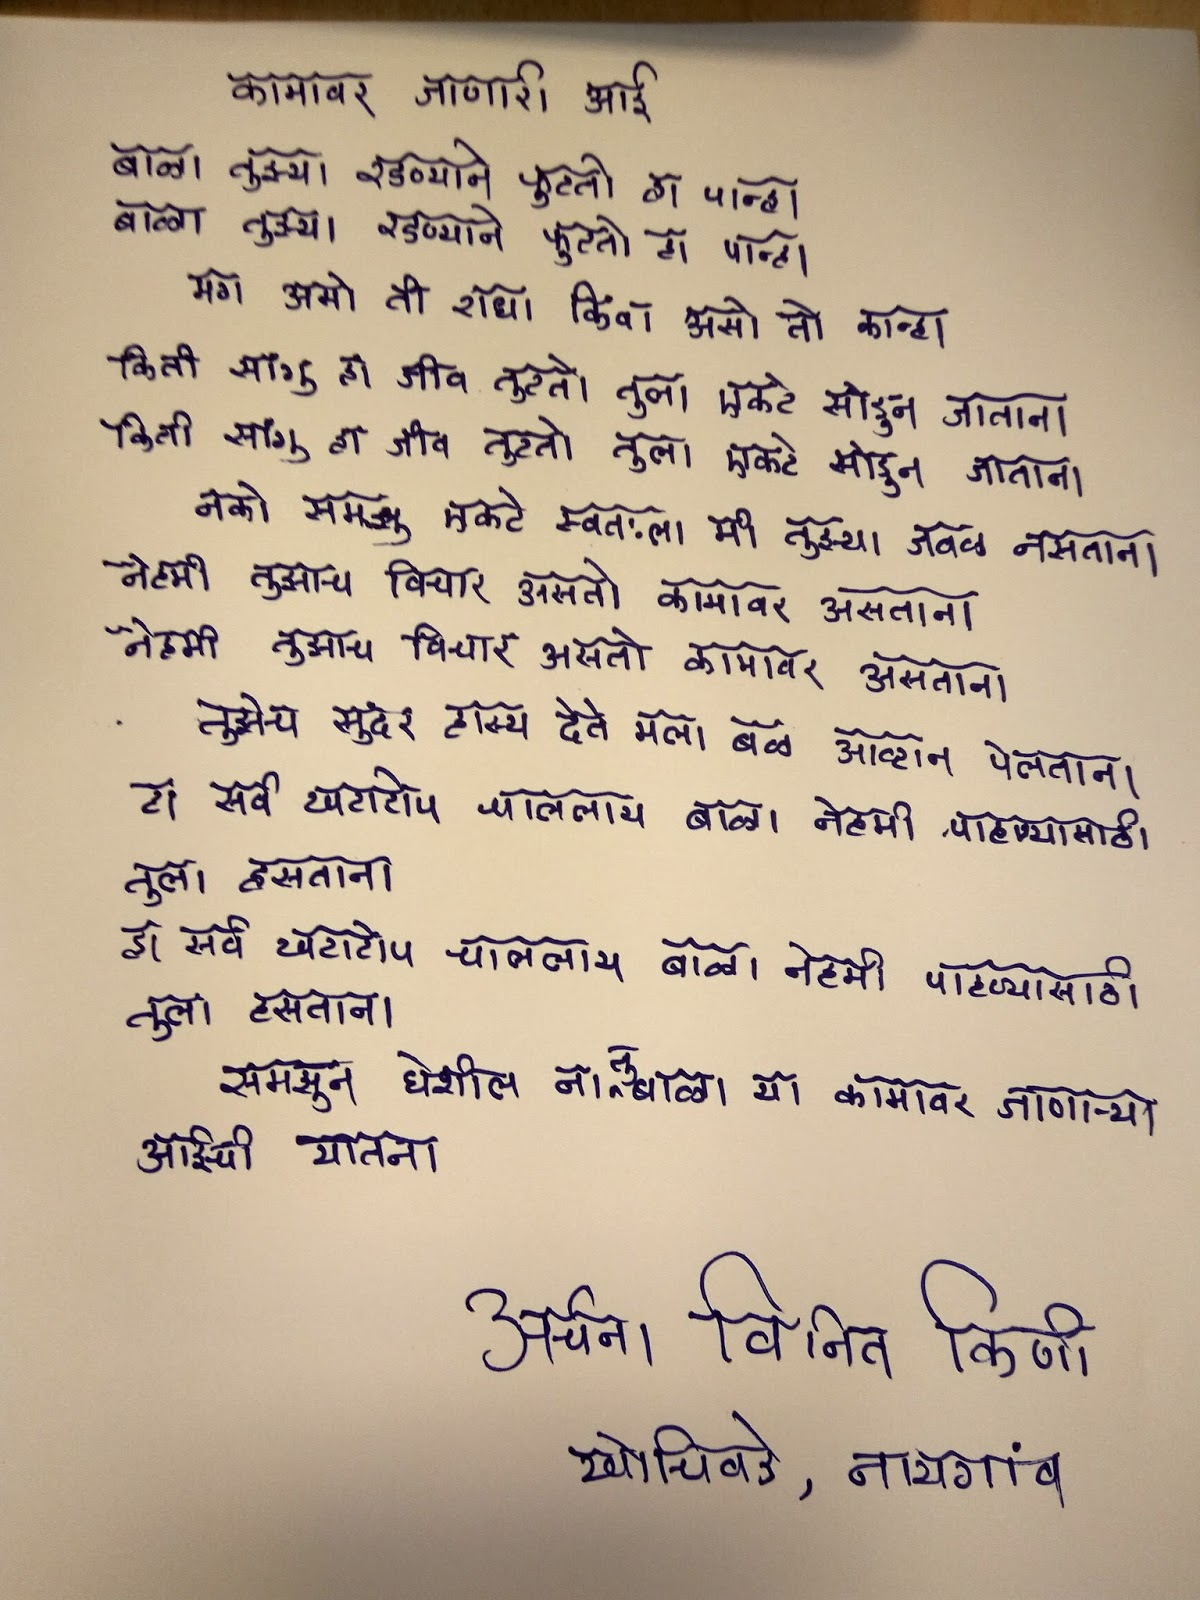 Poem Ukhane Rangoli And Other Heart Touching Marathi